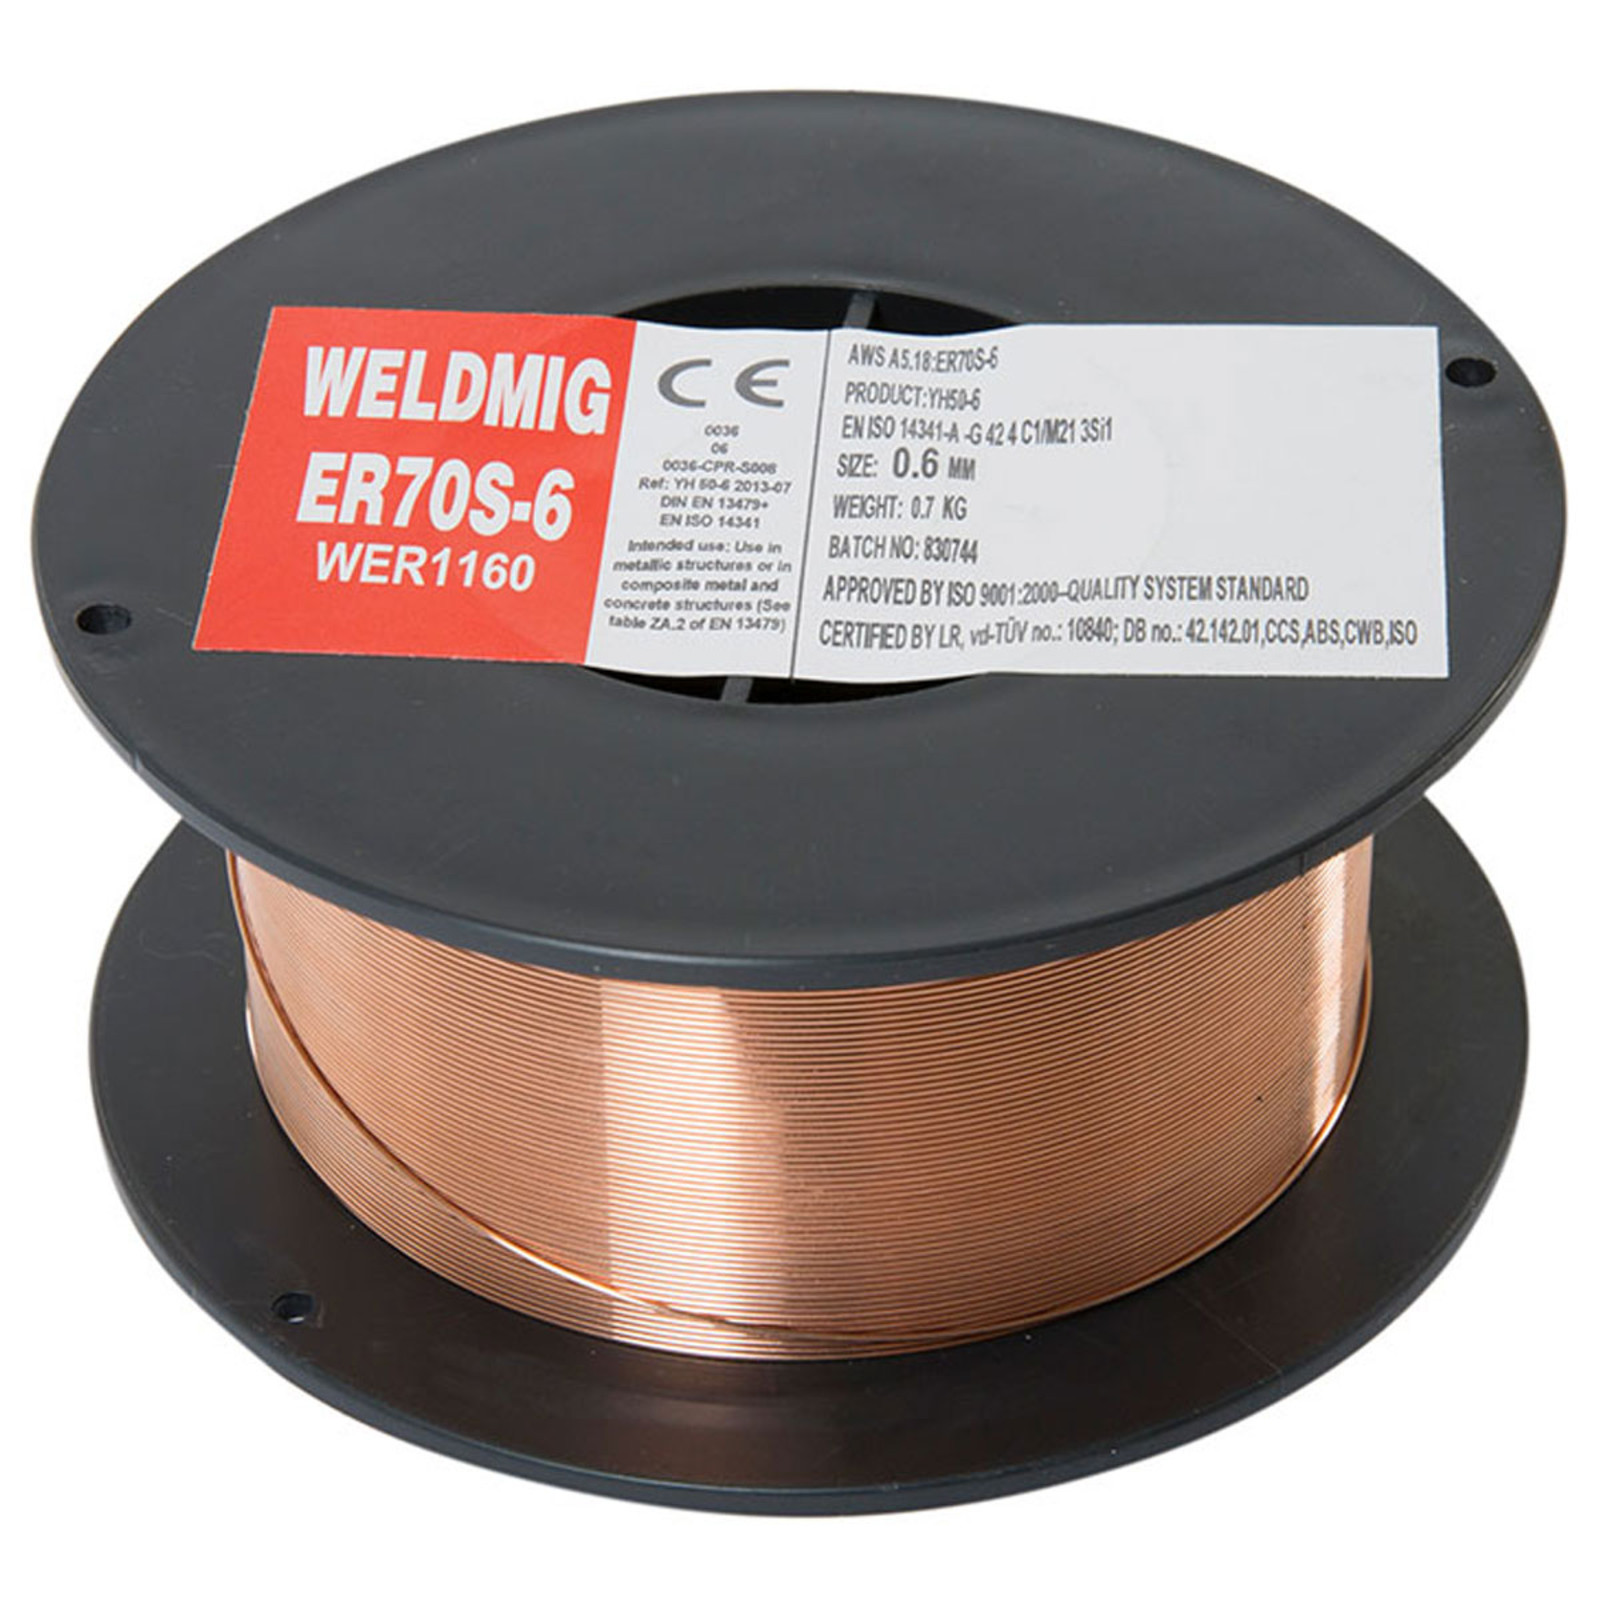 Wolf 0.6mm Welding Wire Copper Coated Spool For MIGs | UKHS.tv Tools ...